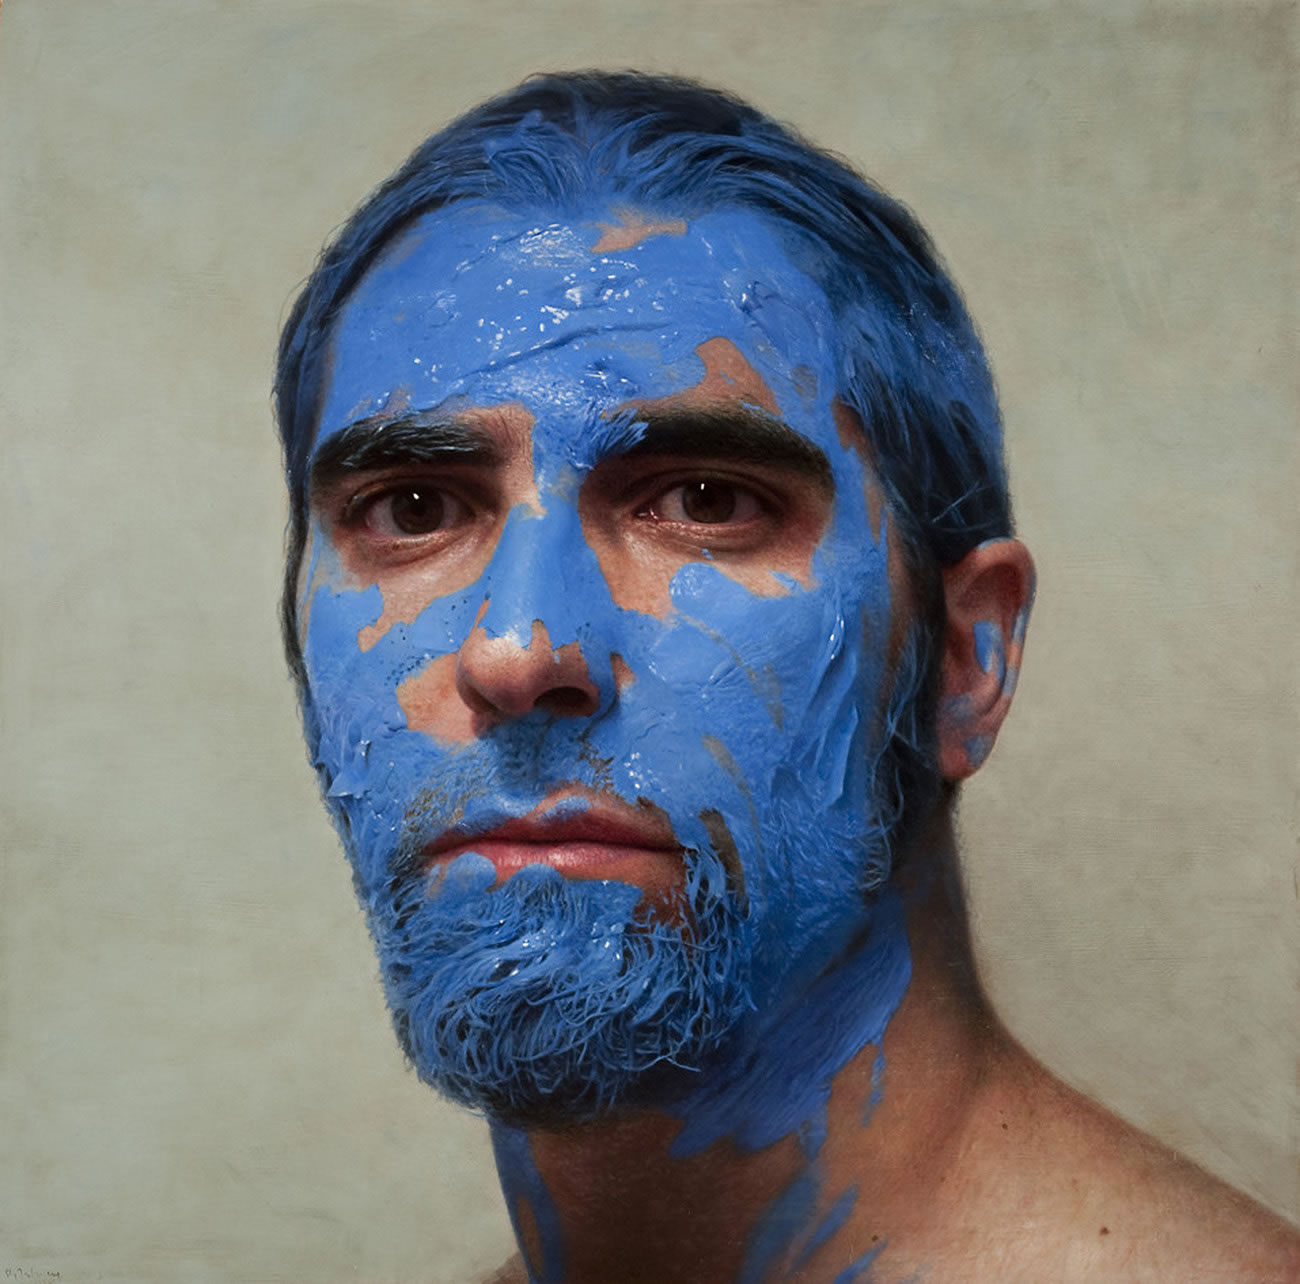 blue self-portrait byEloy Morales